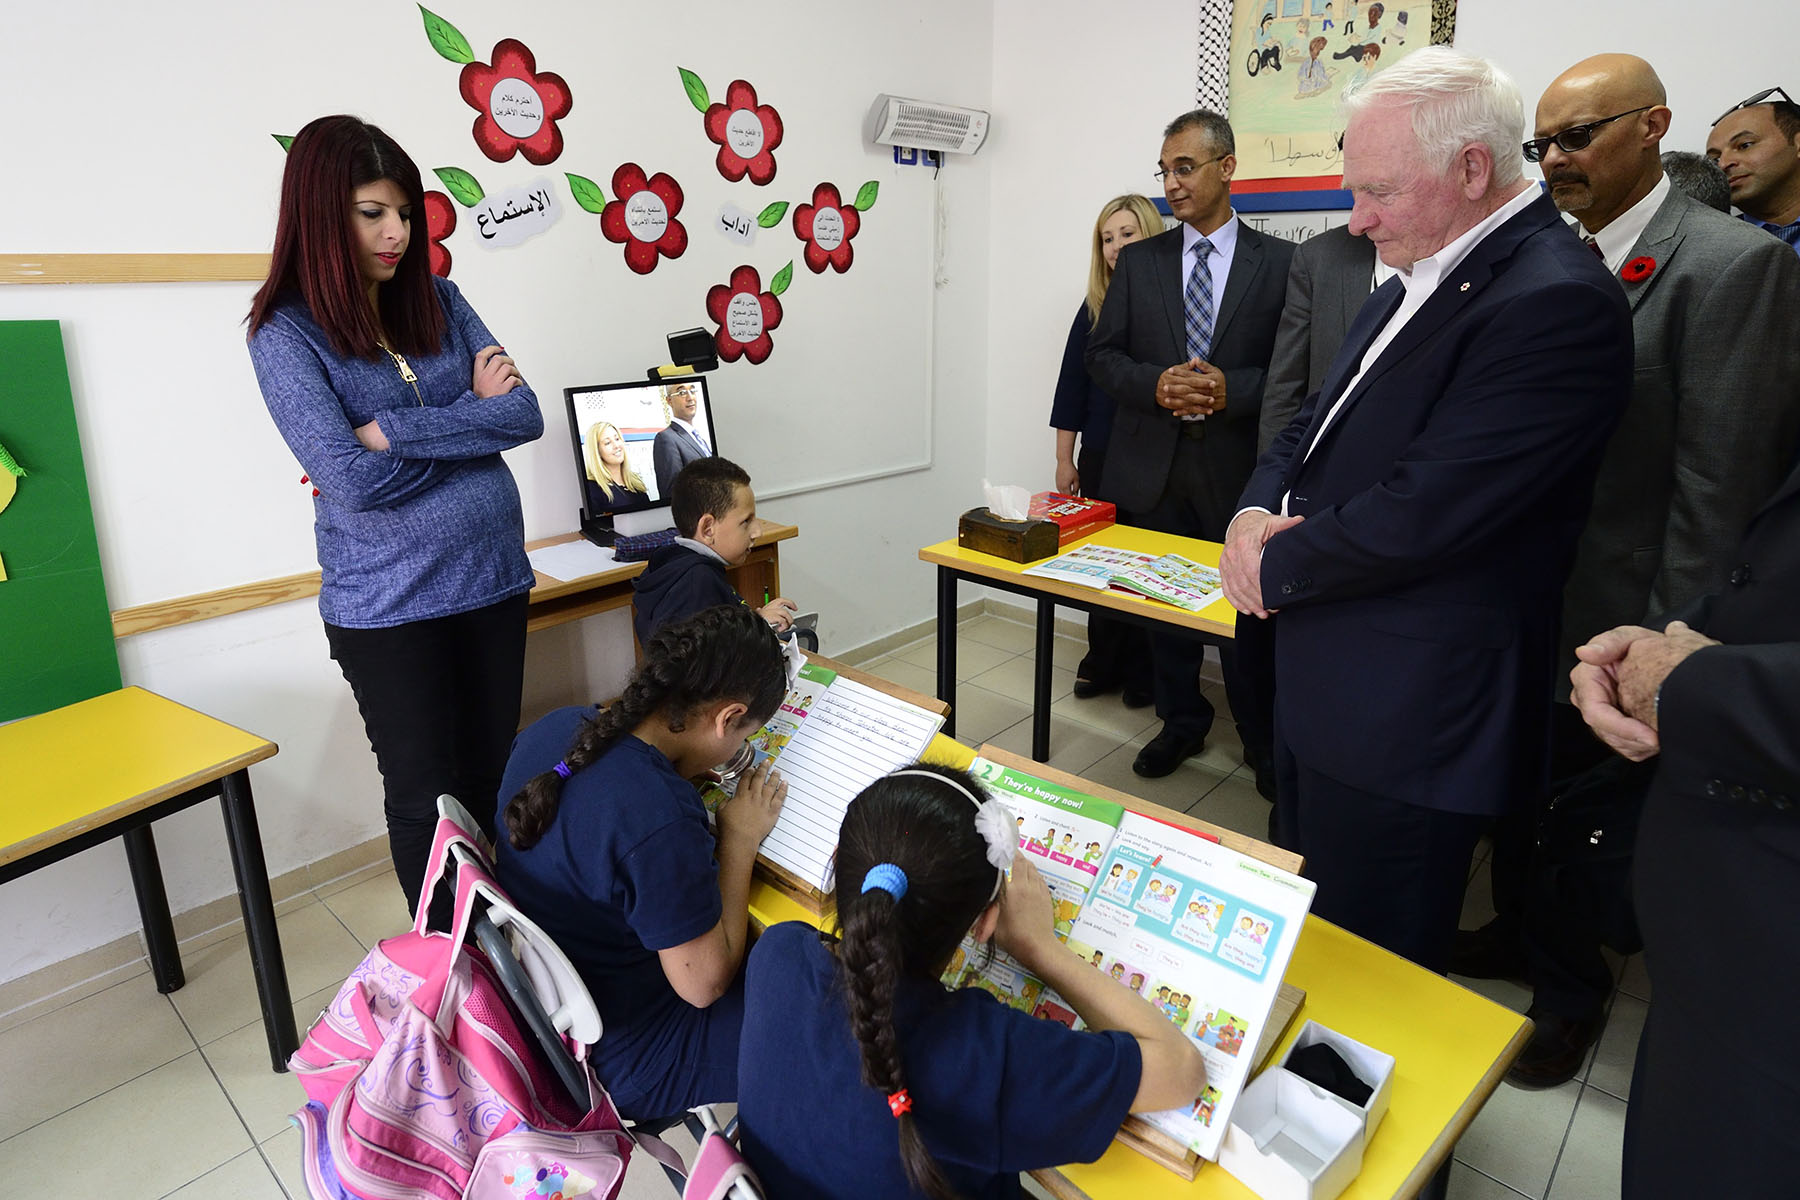 Their Excellencies then visited the Al-Shurooq School for Blind Children to meet with officials, teachers and students to learn more about its services.